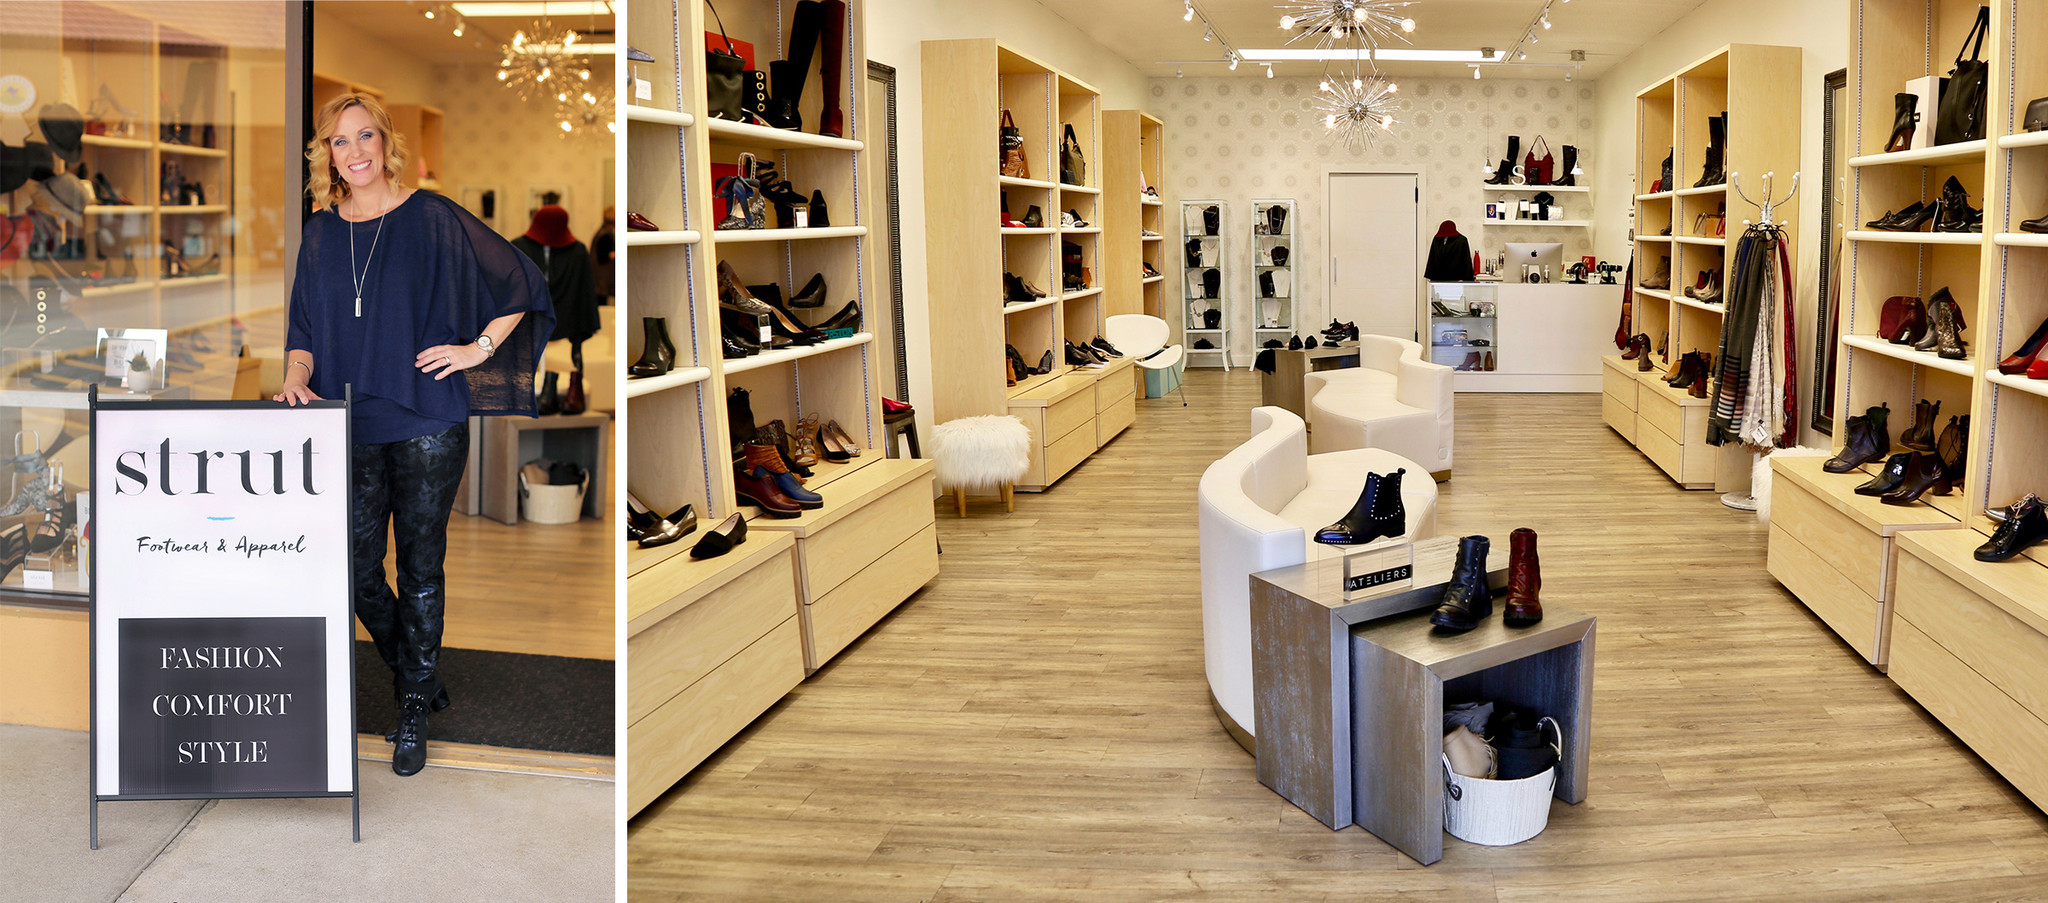 Interior of Strut Footwear & Apparel in Kelowna's sought-after Upper Mission.